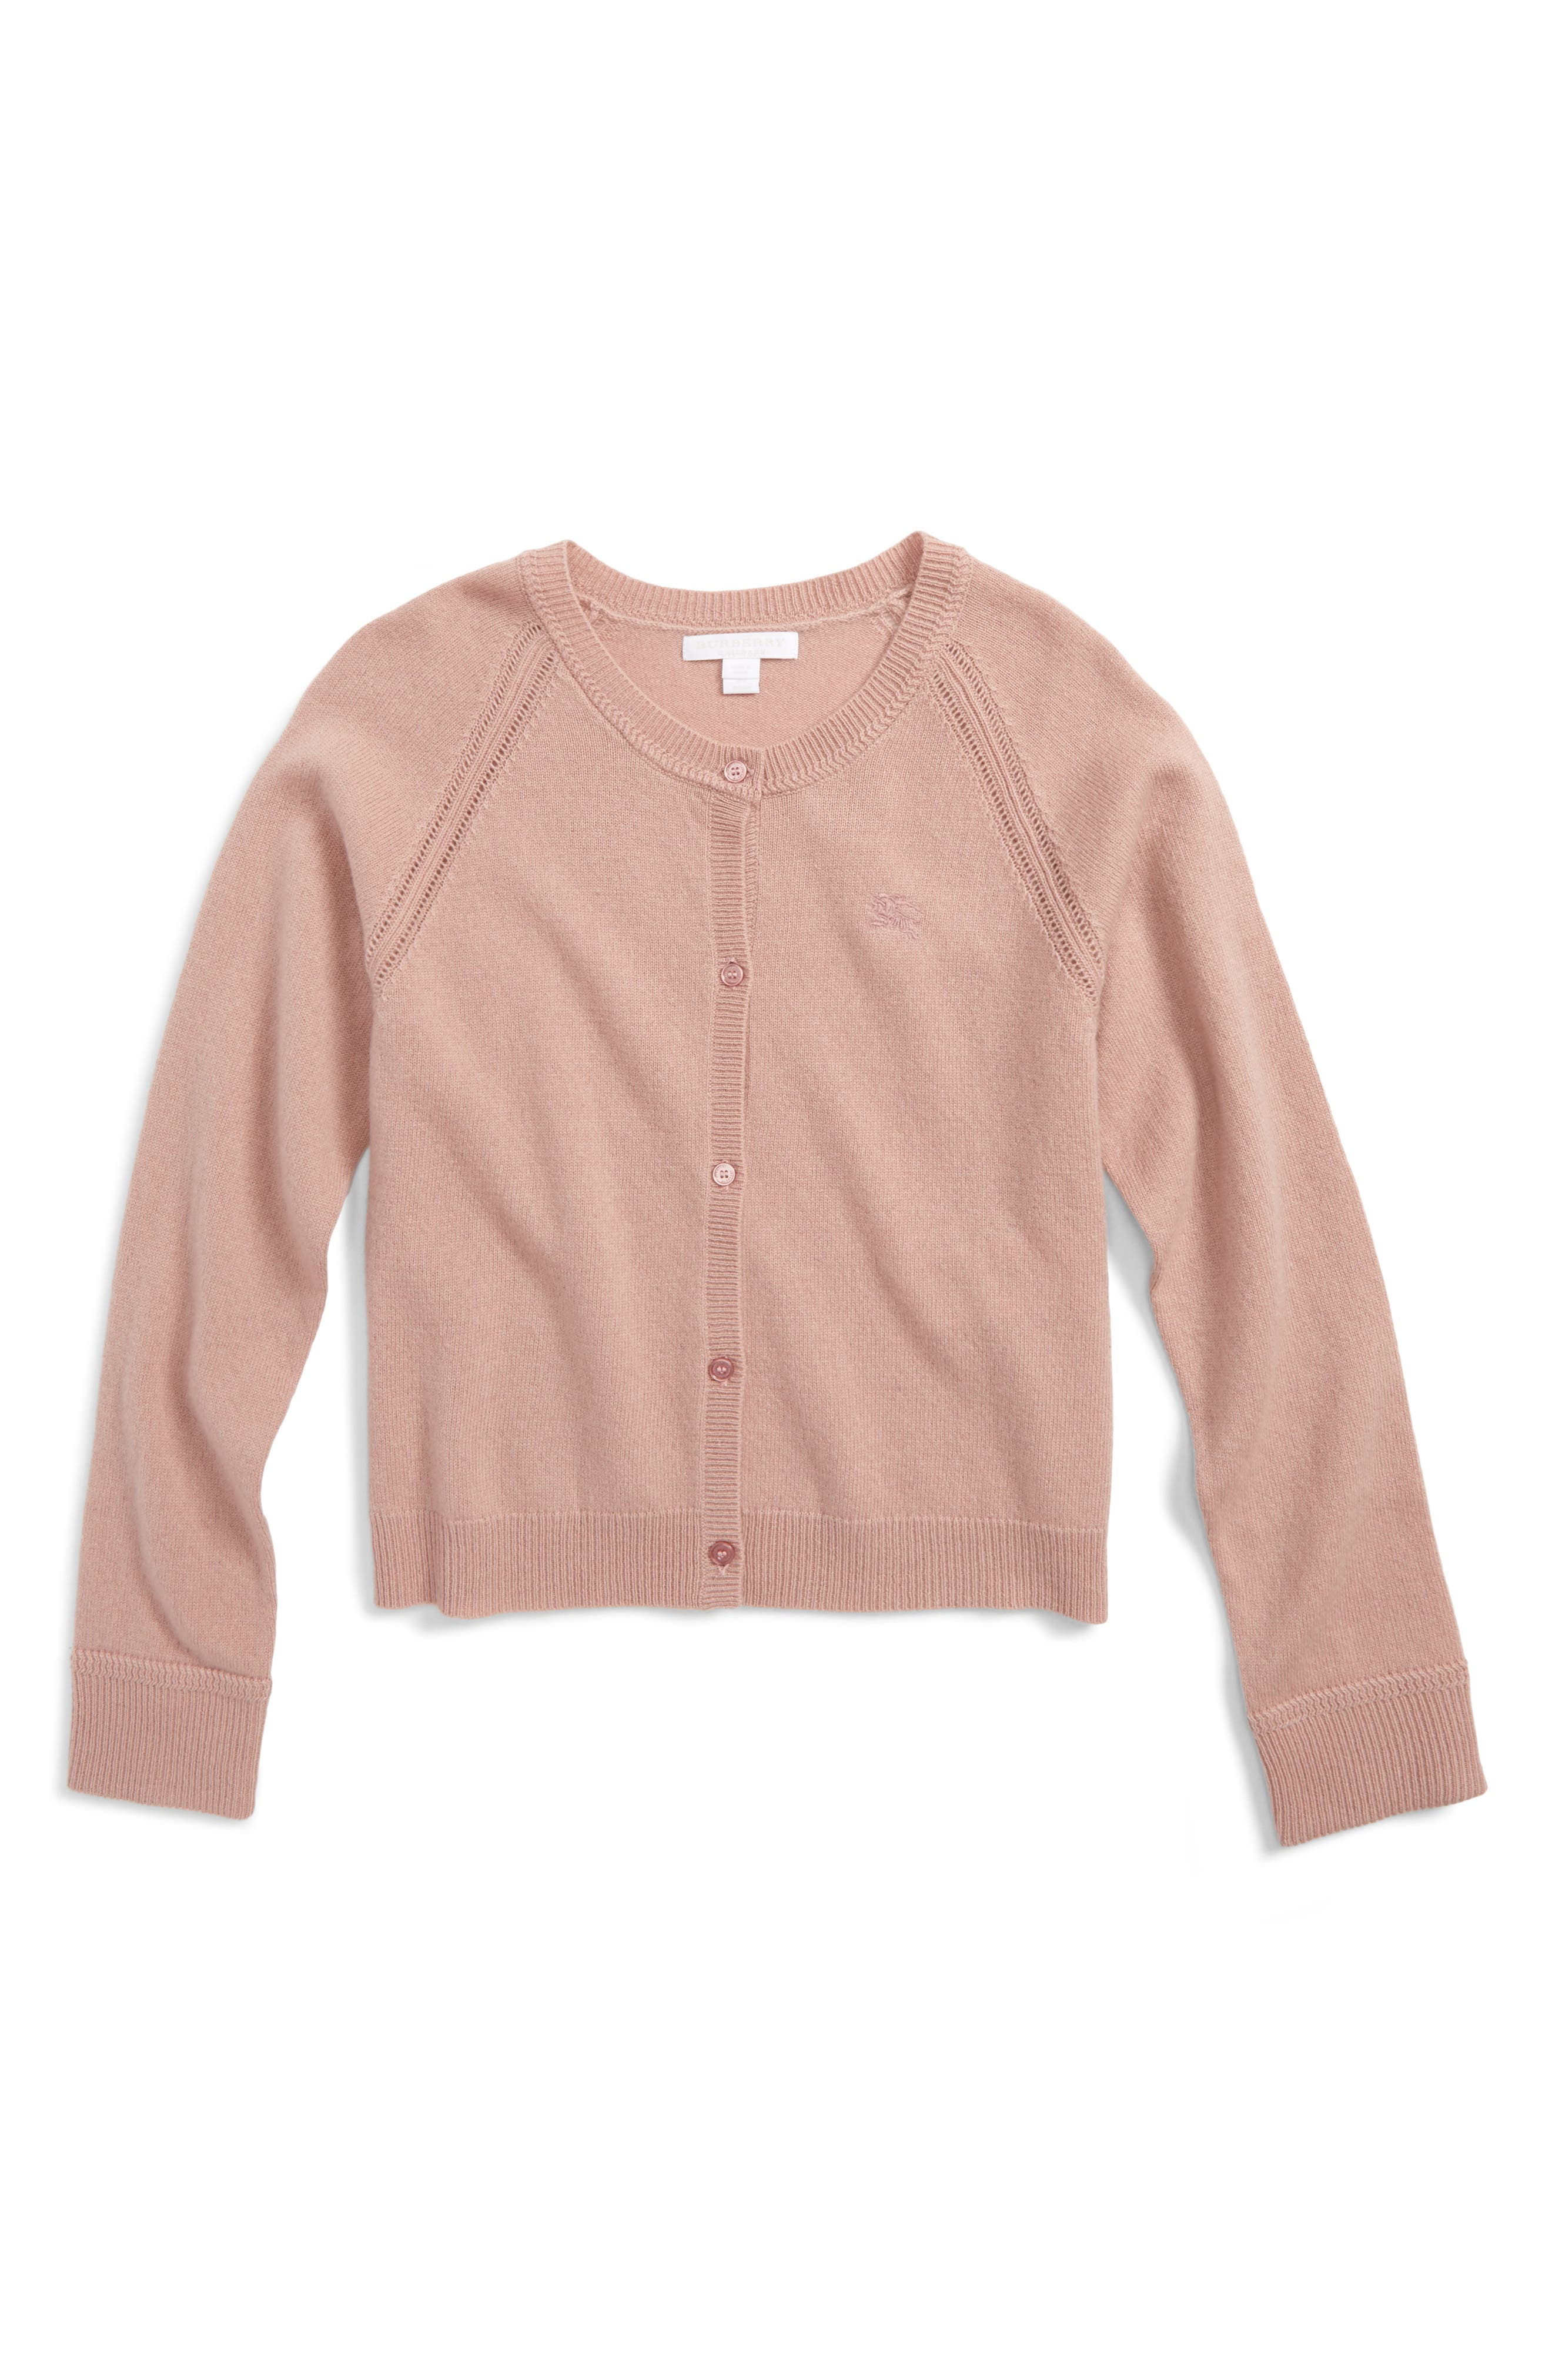 Alternate Image 1 Selected - Burberry Gema Cashmere Cardigan (Little Girls & Big Girls)